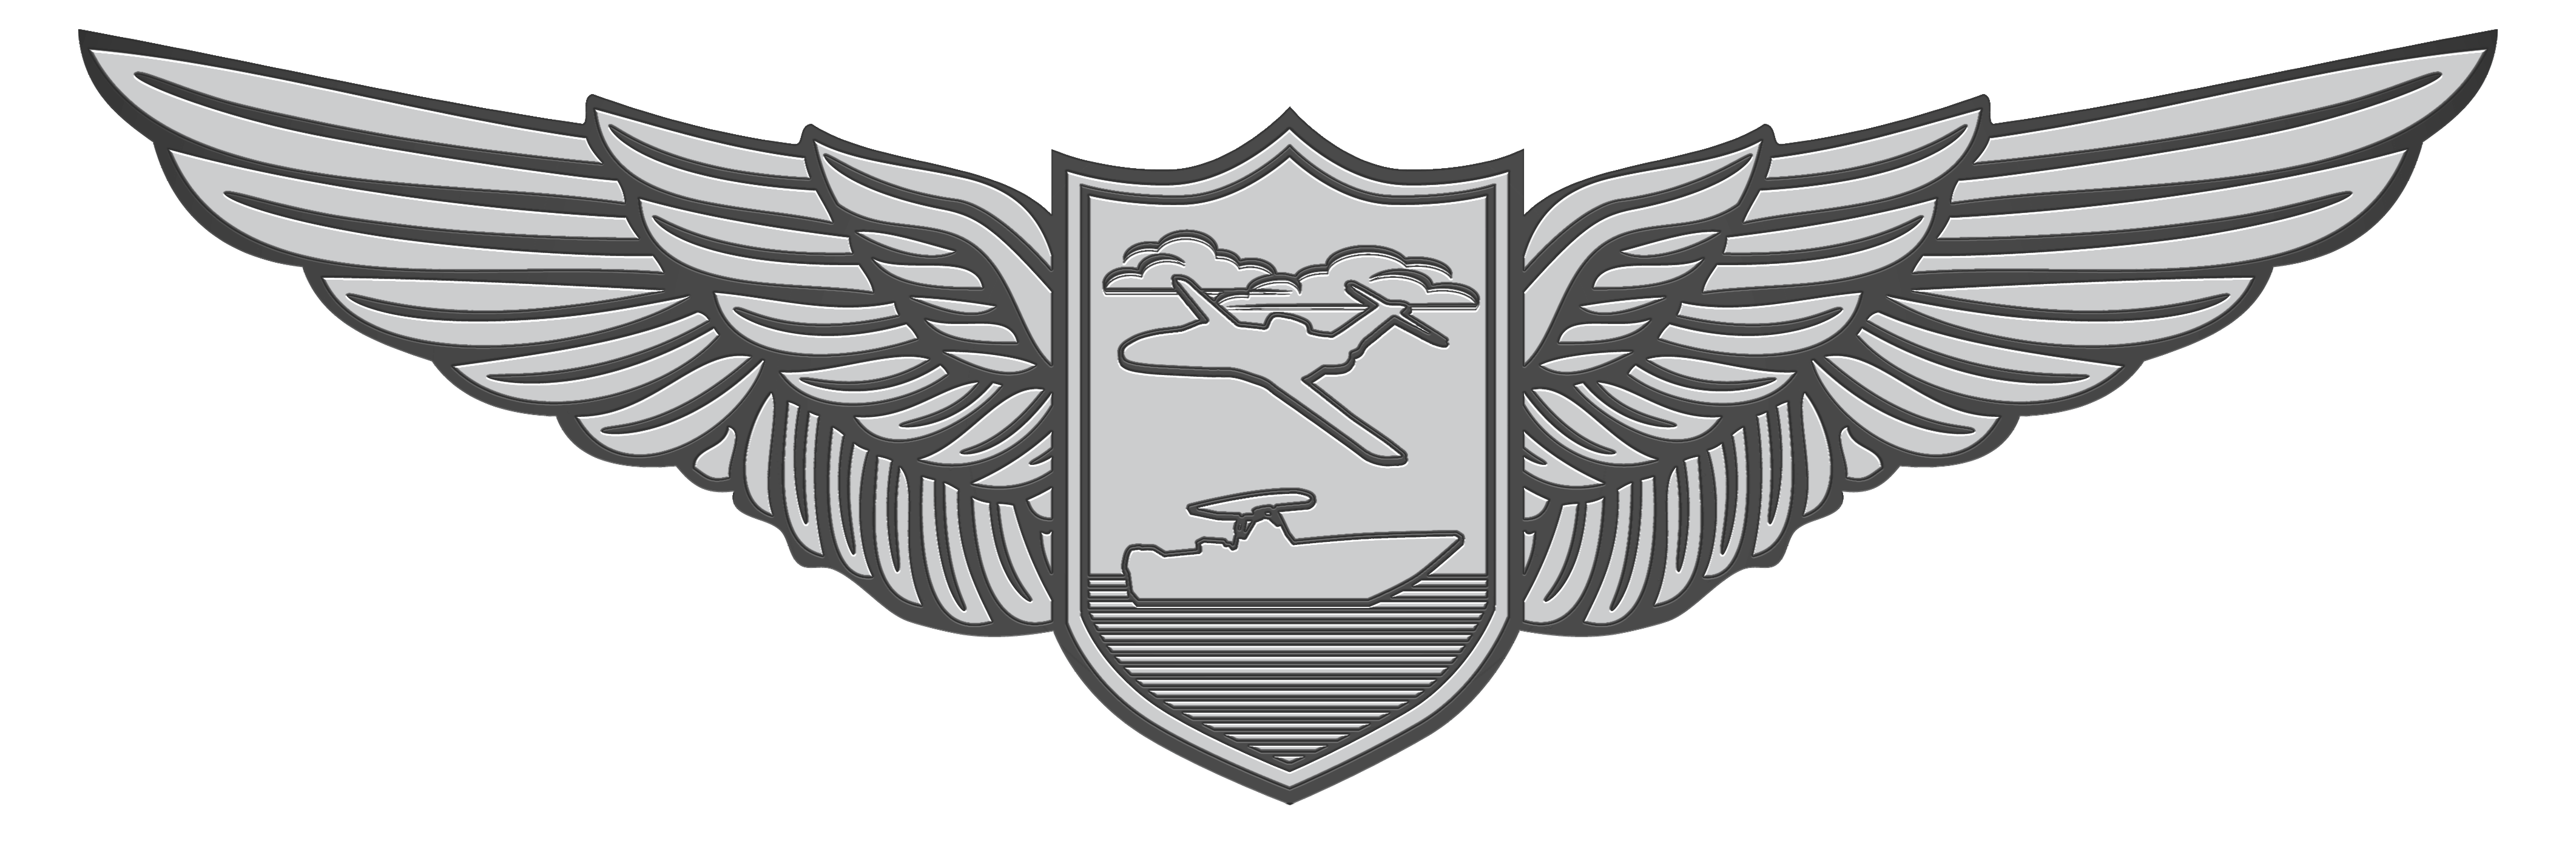 Silver crest png. Hss wings final for